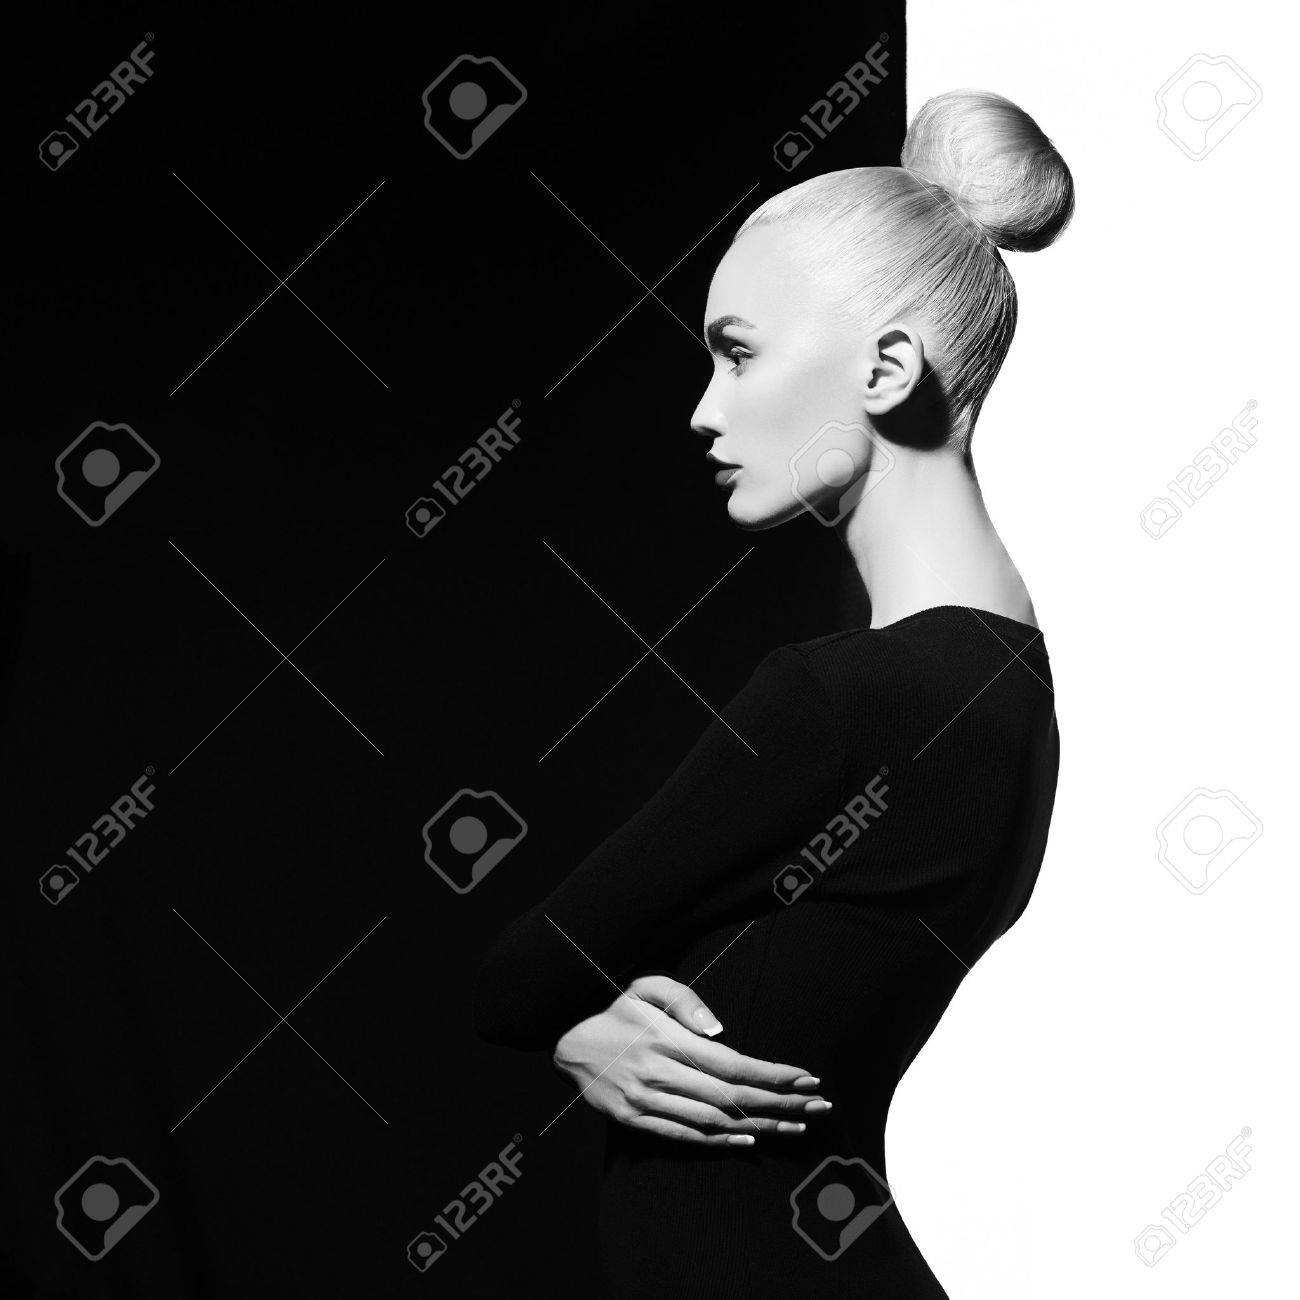 Fashion art studio portrait of elegant blode in geometric black and white background stock photo